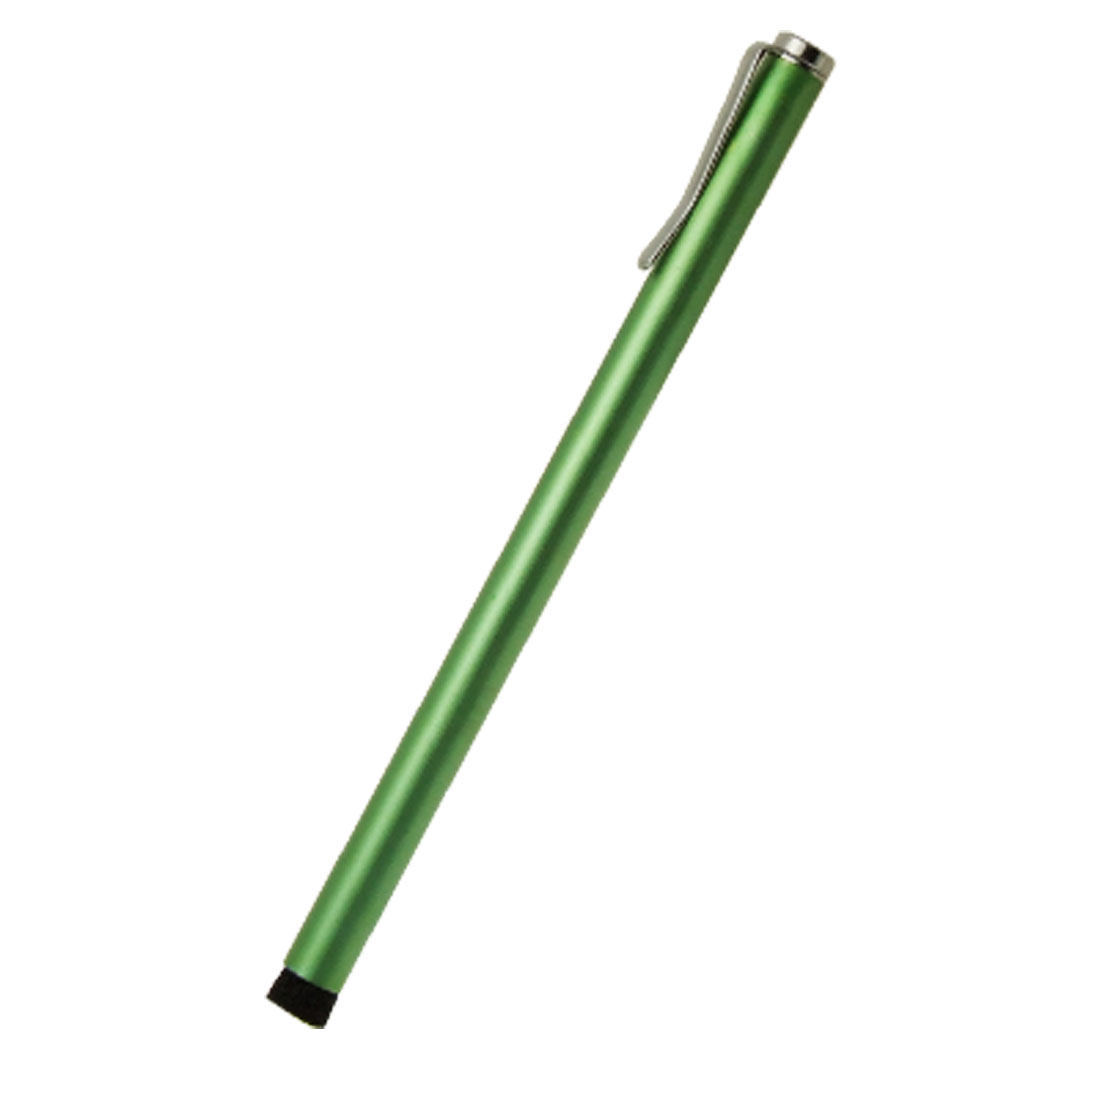 Green Stylus Pen with Clip for Apple iPhone 3G iPod Touch